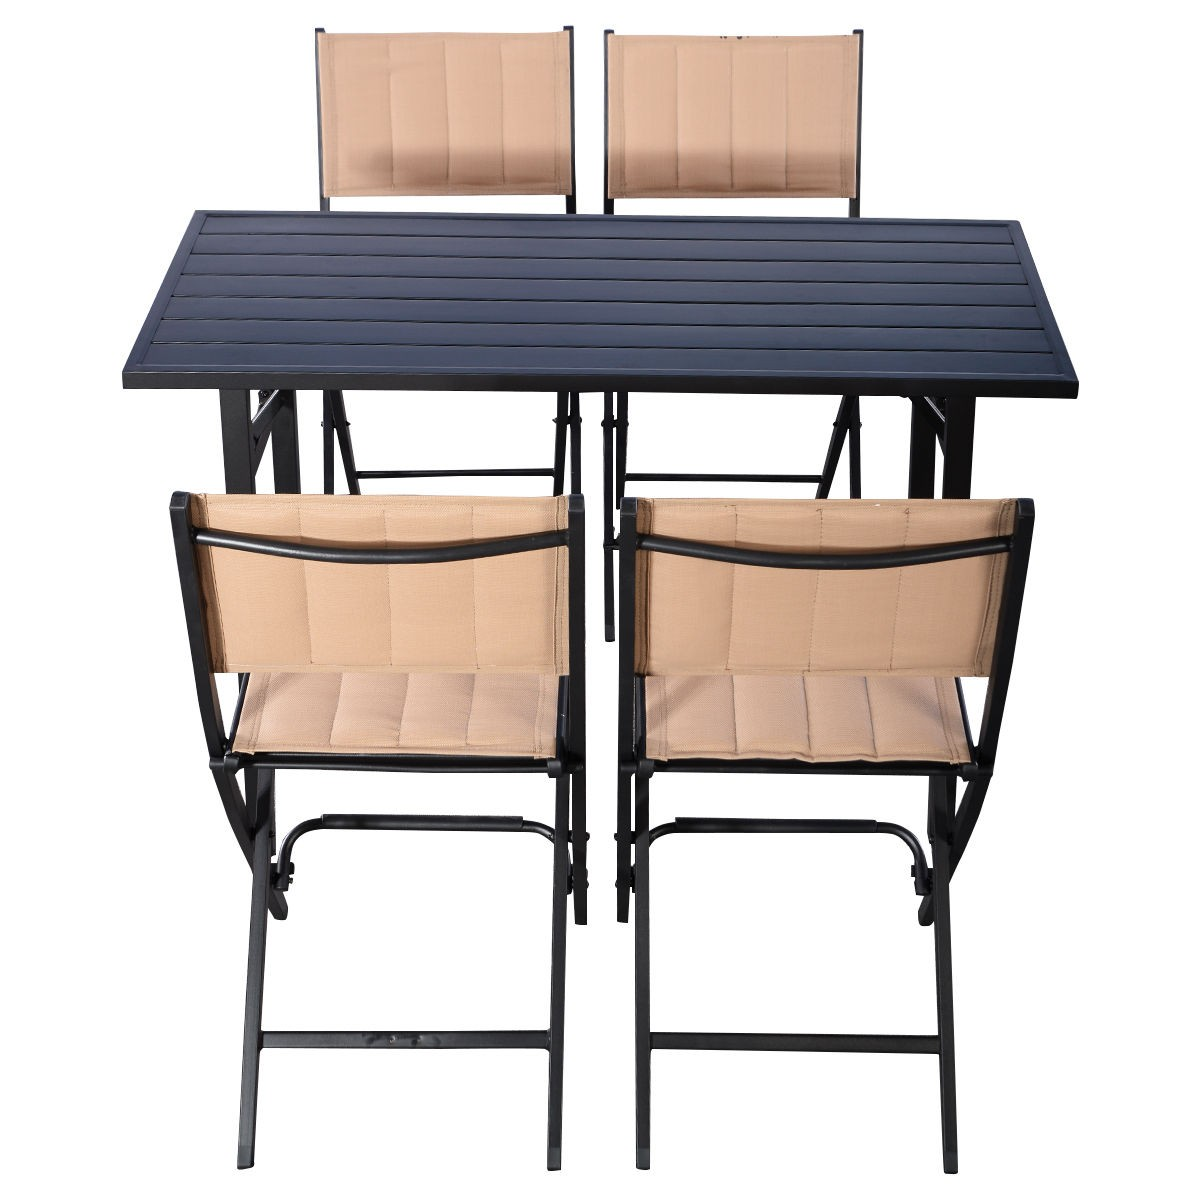 5 pcs set patio folding chairs rect table furniture for Poolside table and chairs